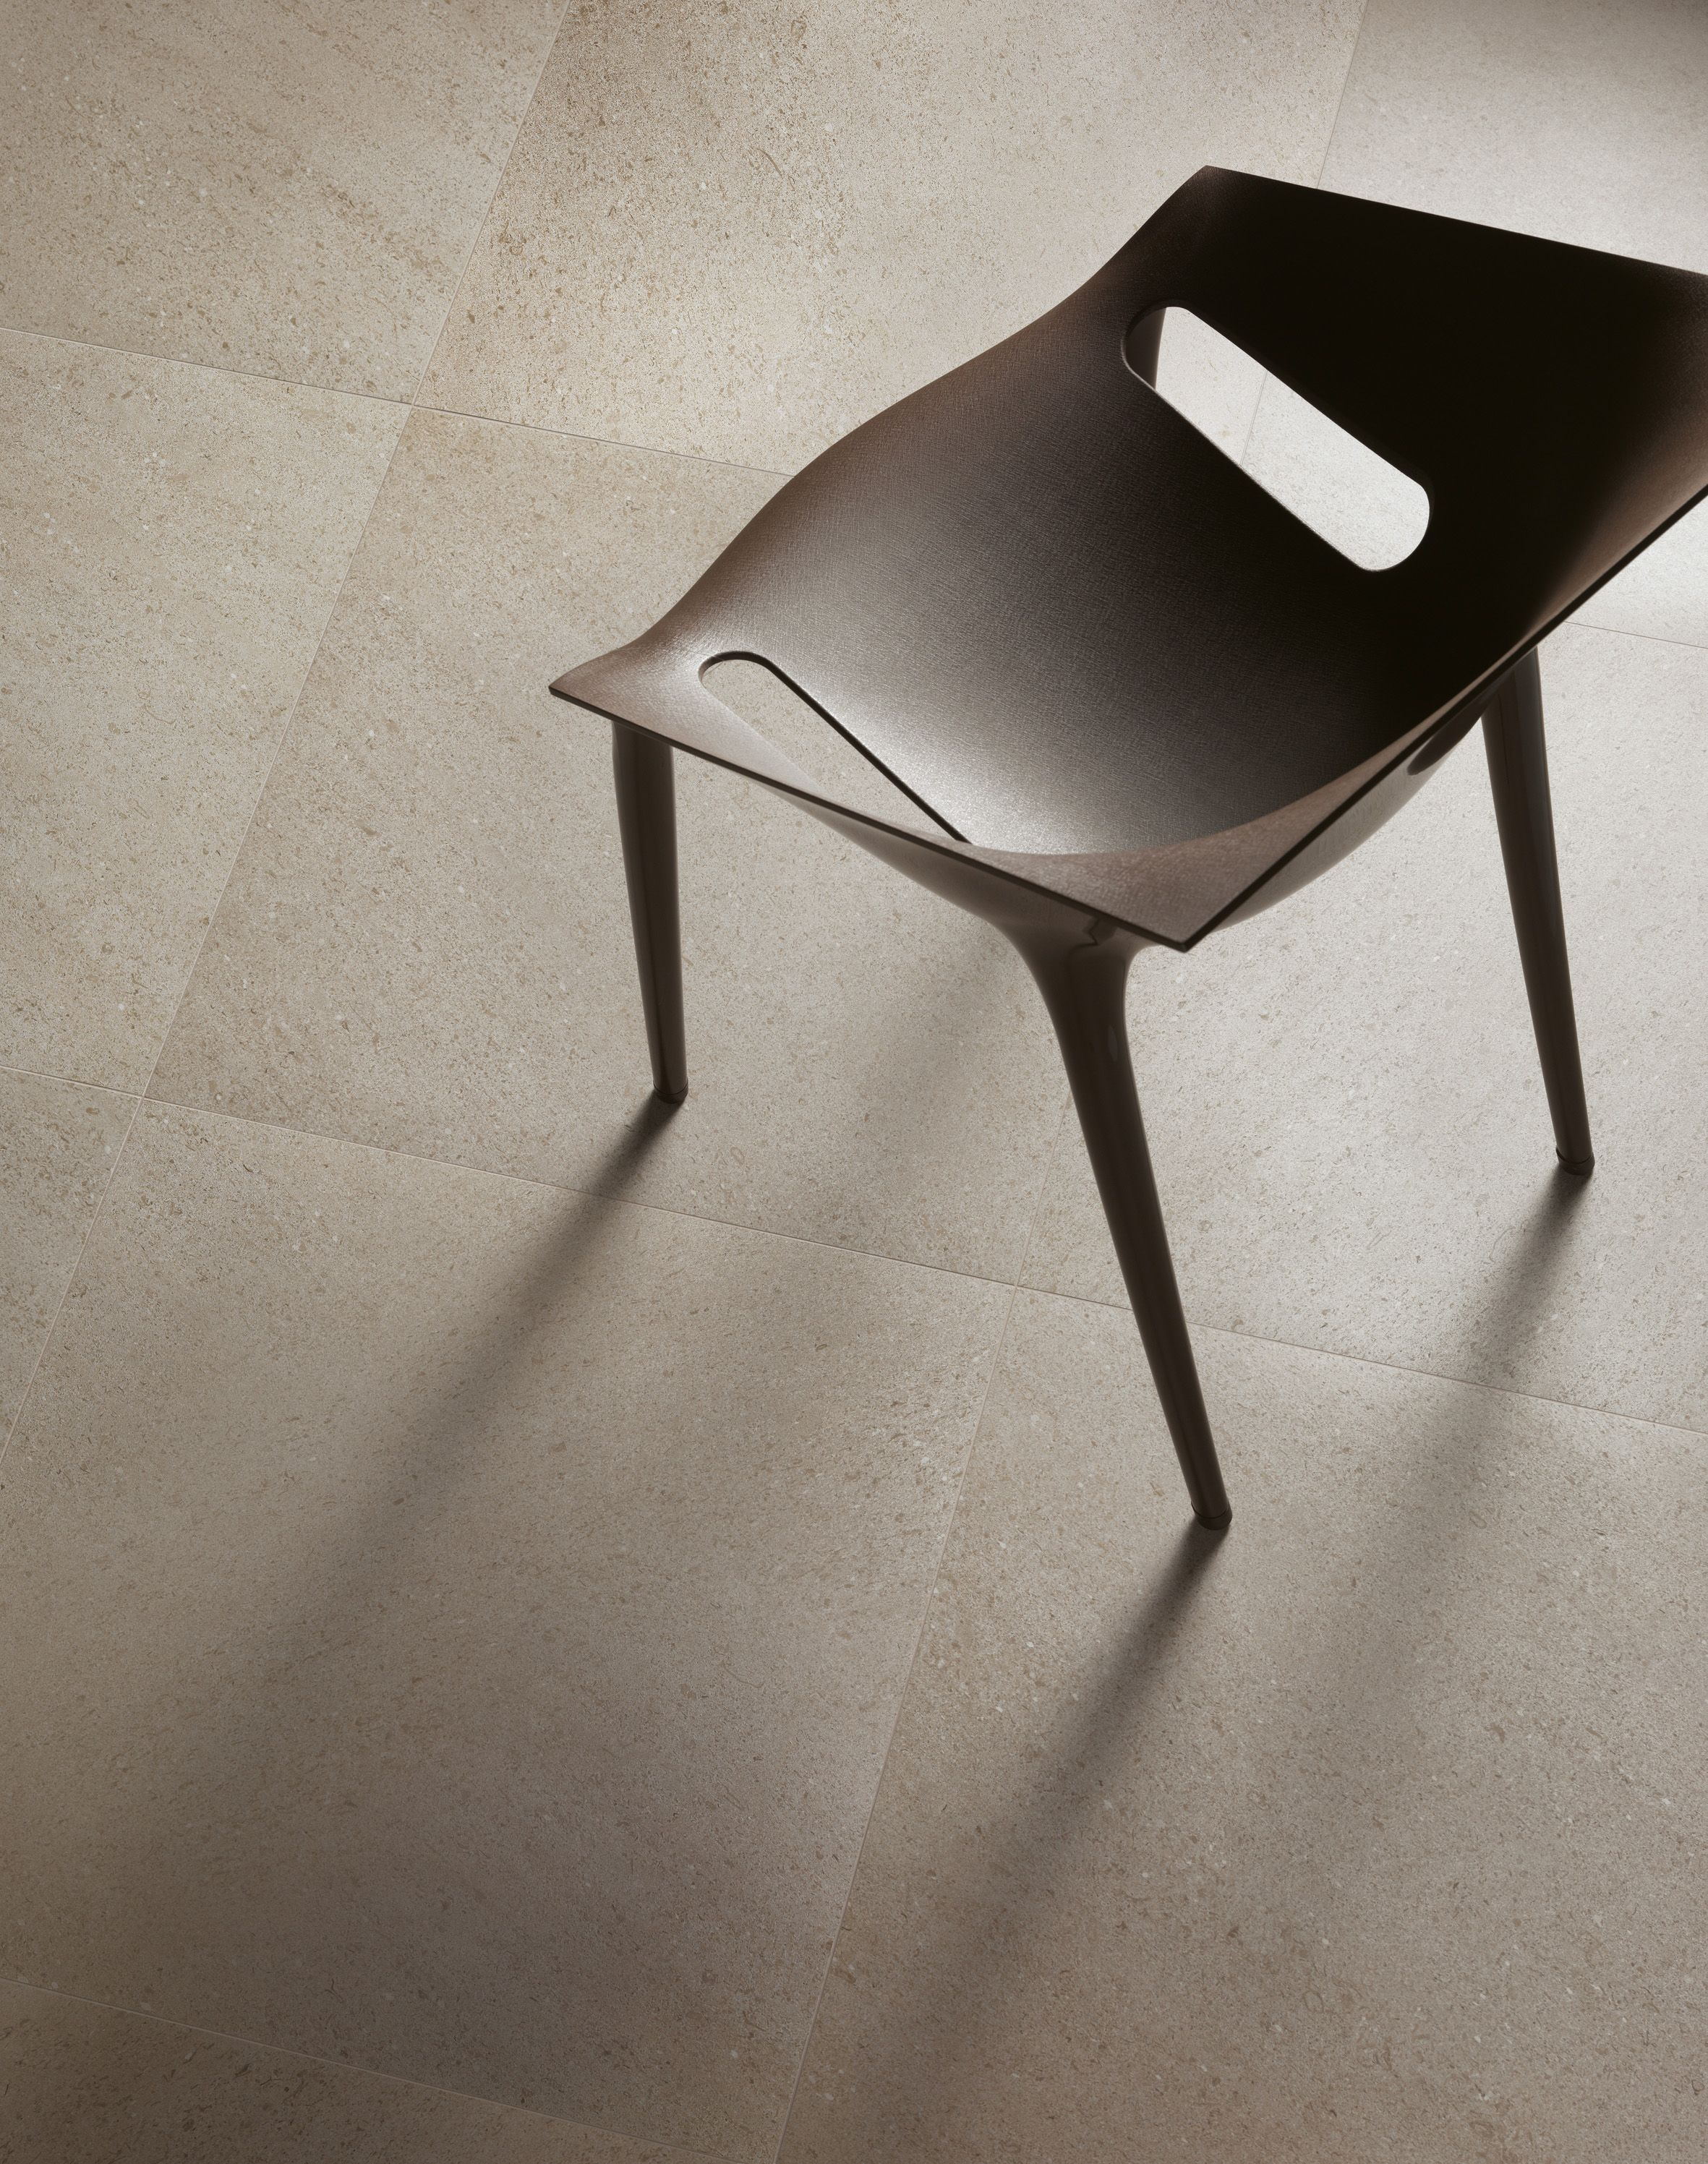 The elegant appeal of lipica stone finds its expression in Space by Caesar (Booth L11016), the best ceramic style interpreting minimalist charm #Coverings2014